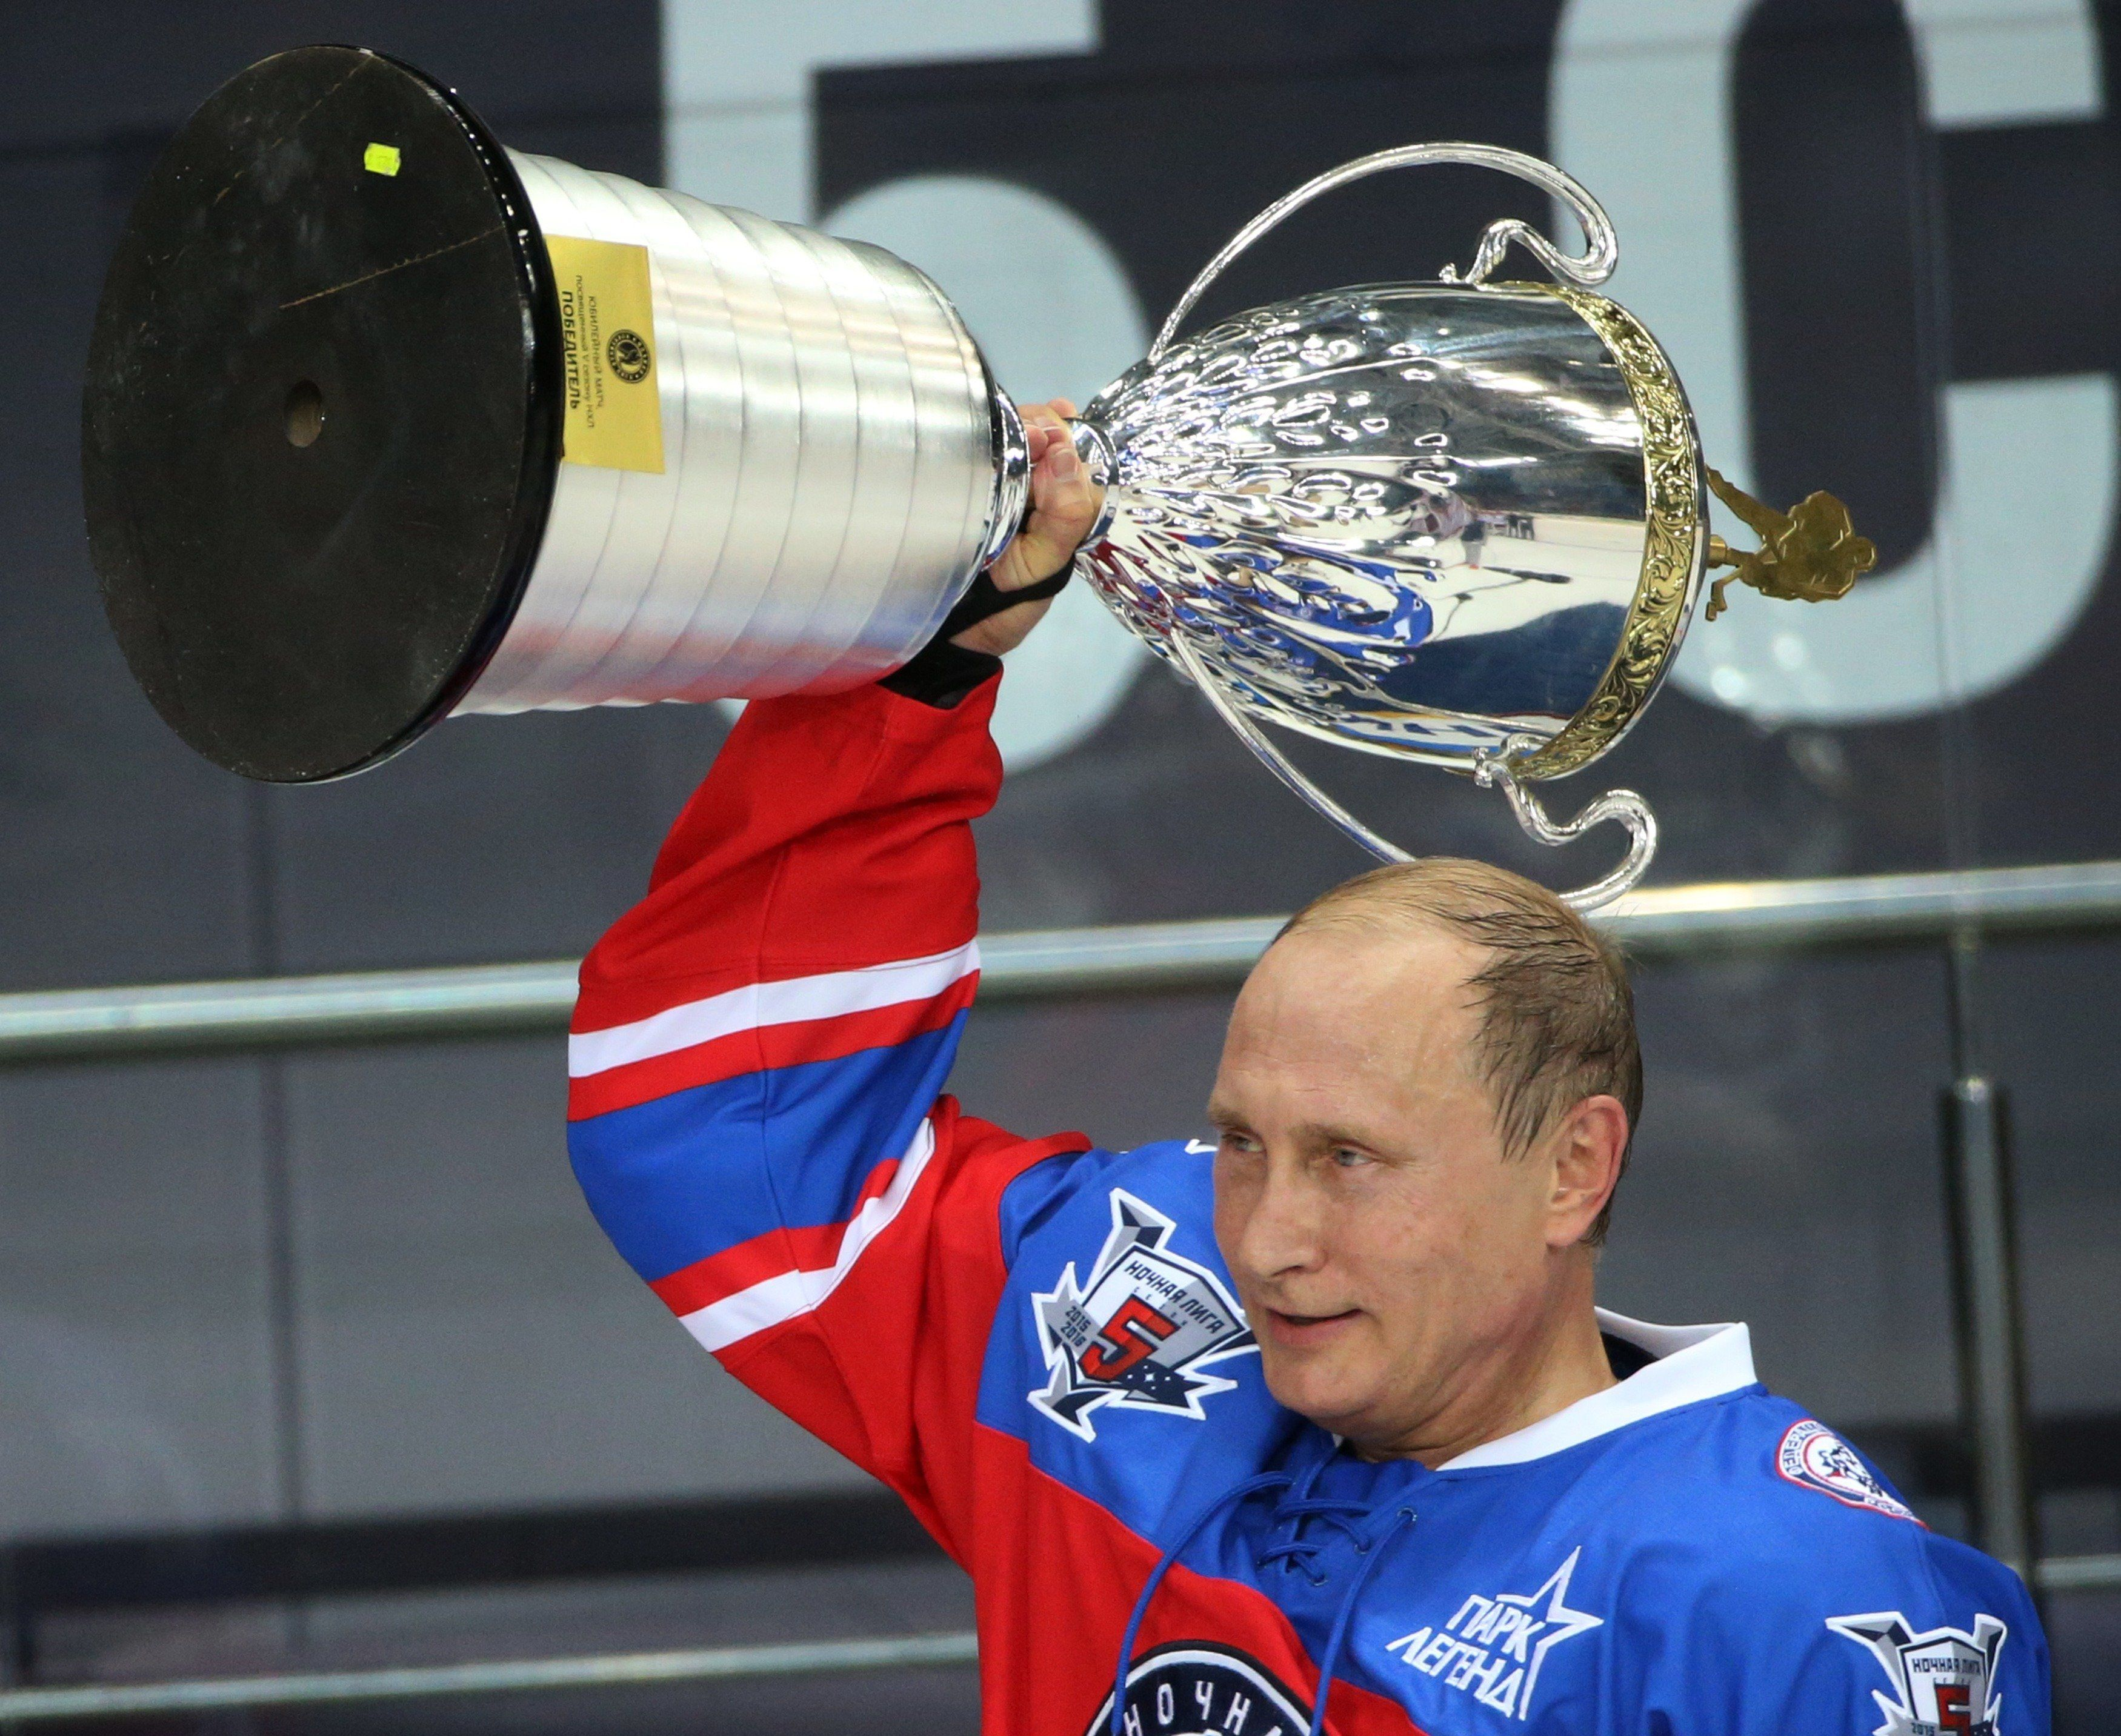 Putin celebrated his birthday, scoring seven goals in a hockey match 10/07/2015 92